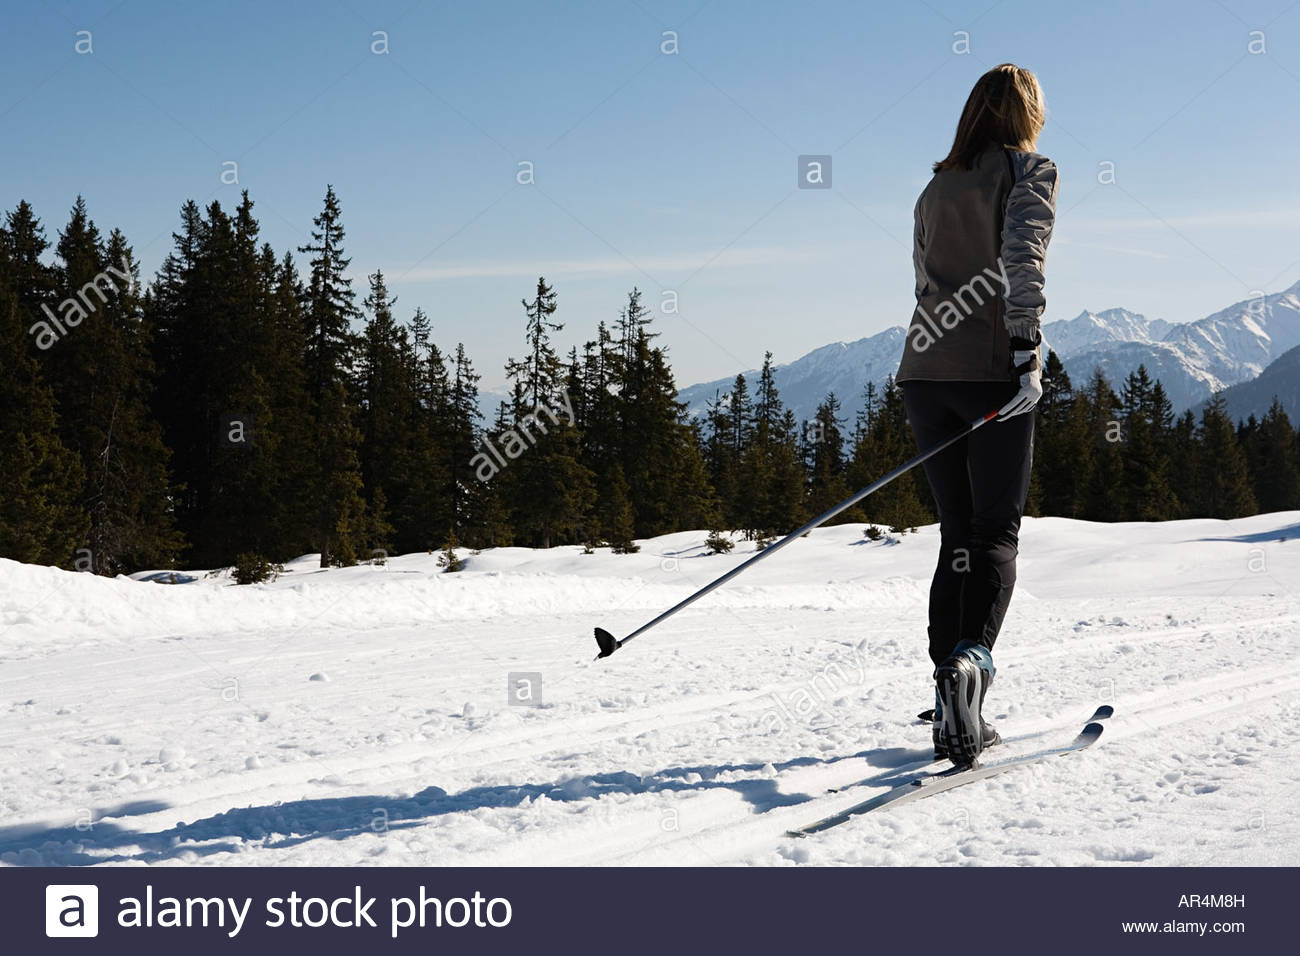 Woman cross country skiing - Stock Image